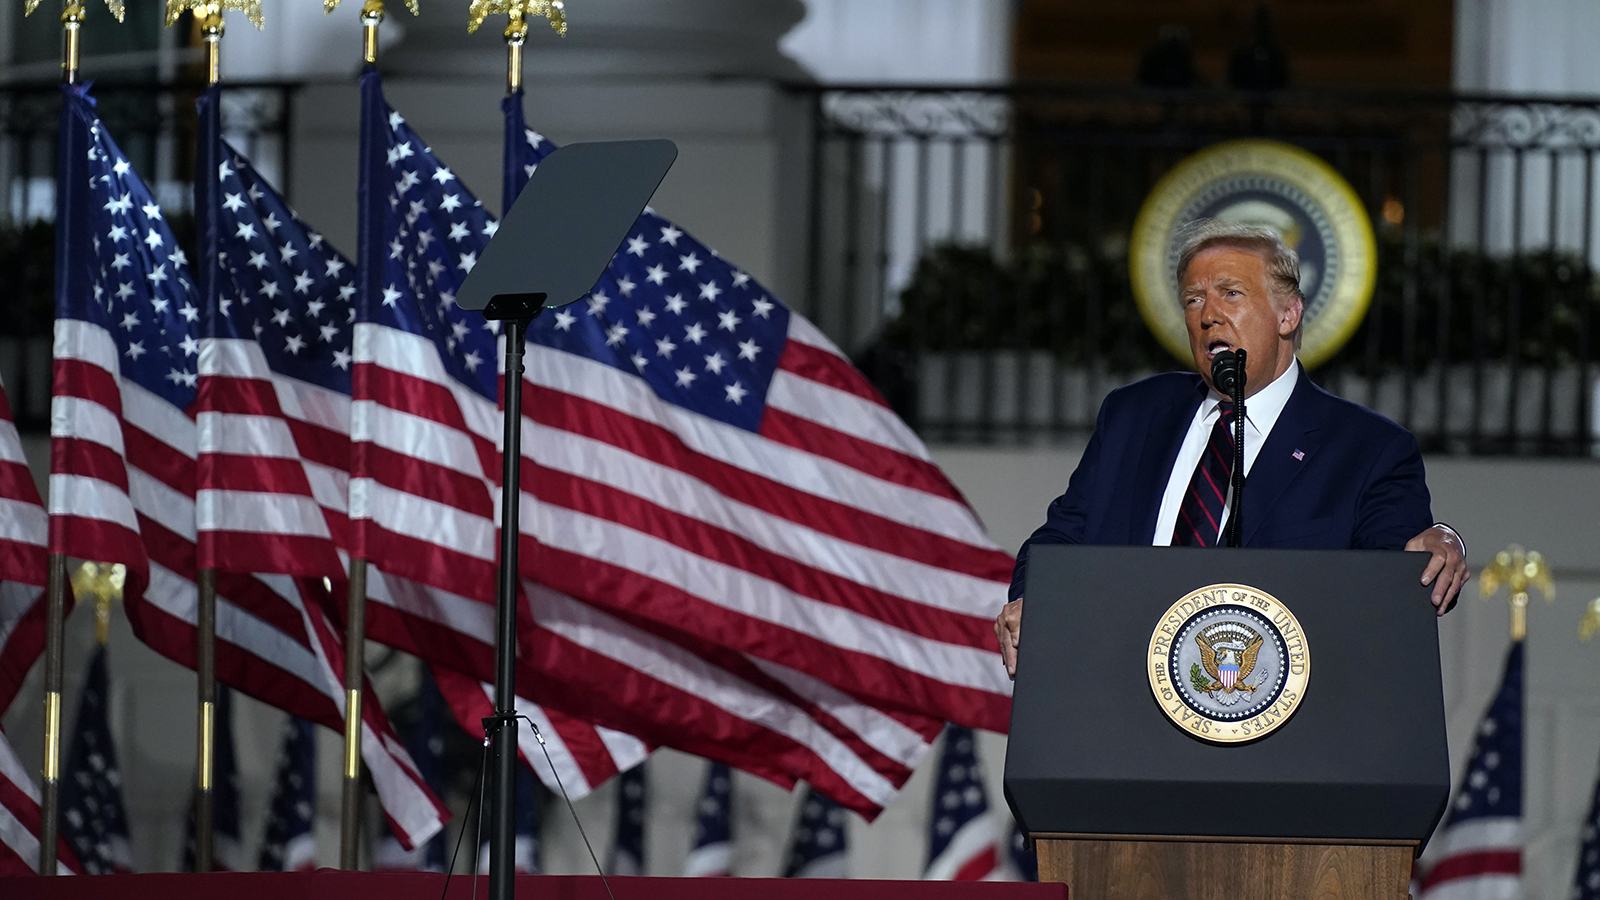 President Donald Trump speaks from the South Lawn of the White House on the fourth day of the Republican National Convention on Thursday in Washington.